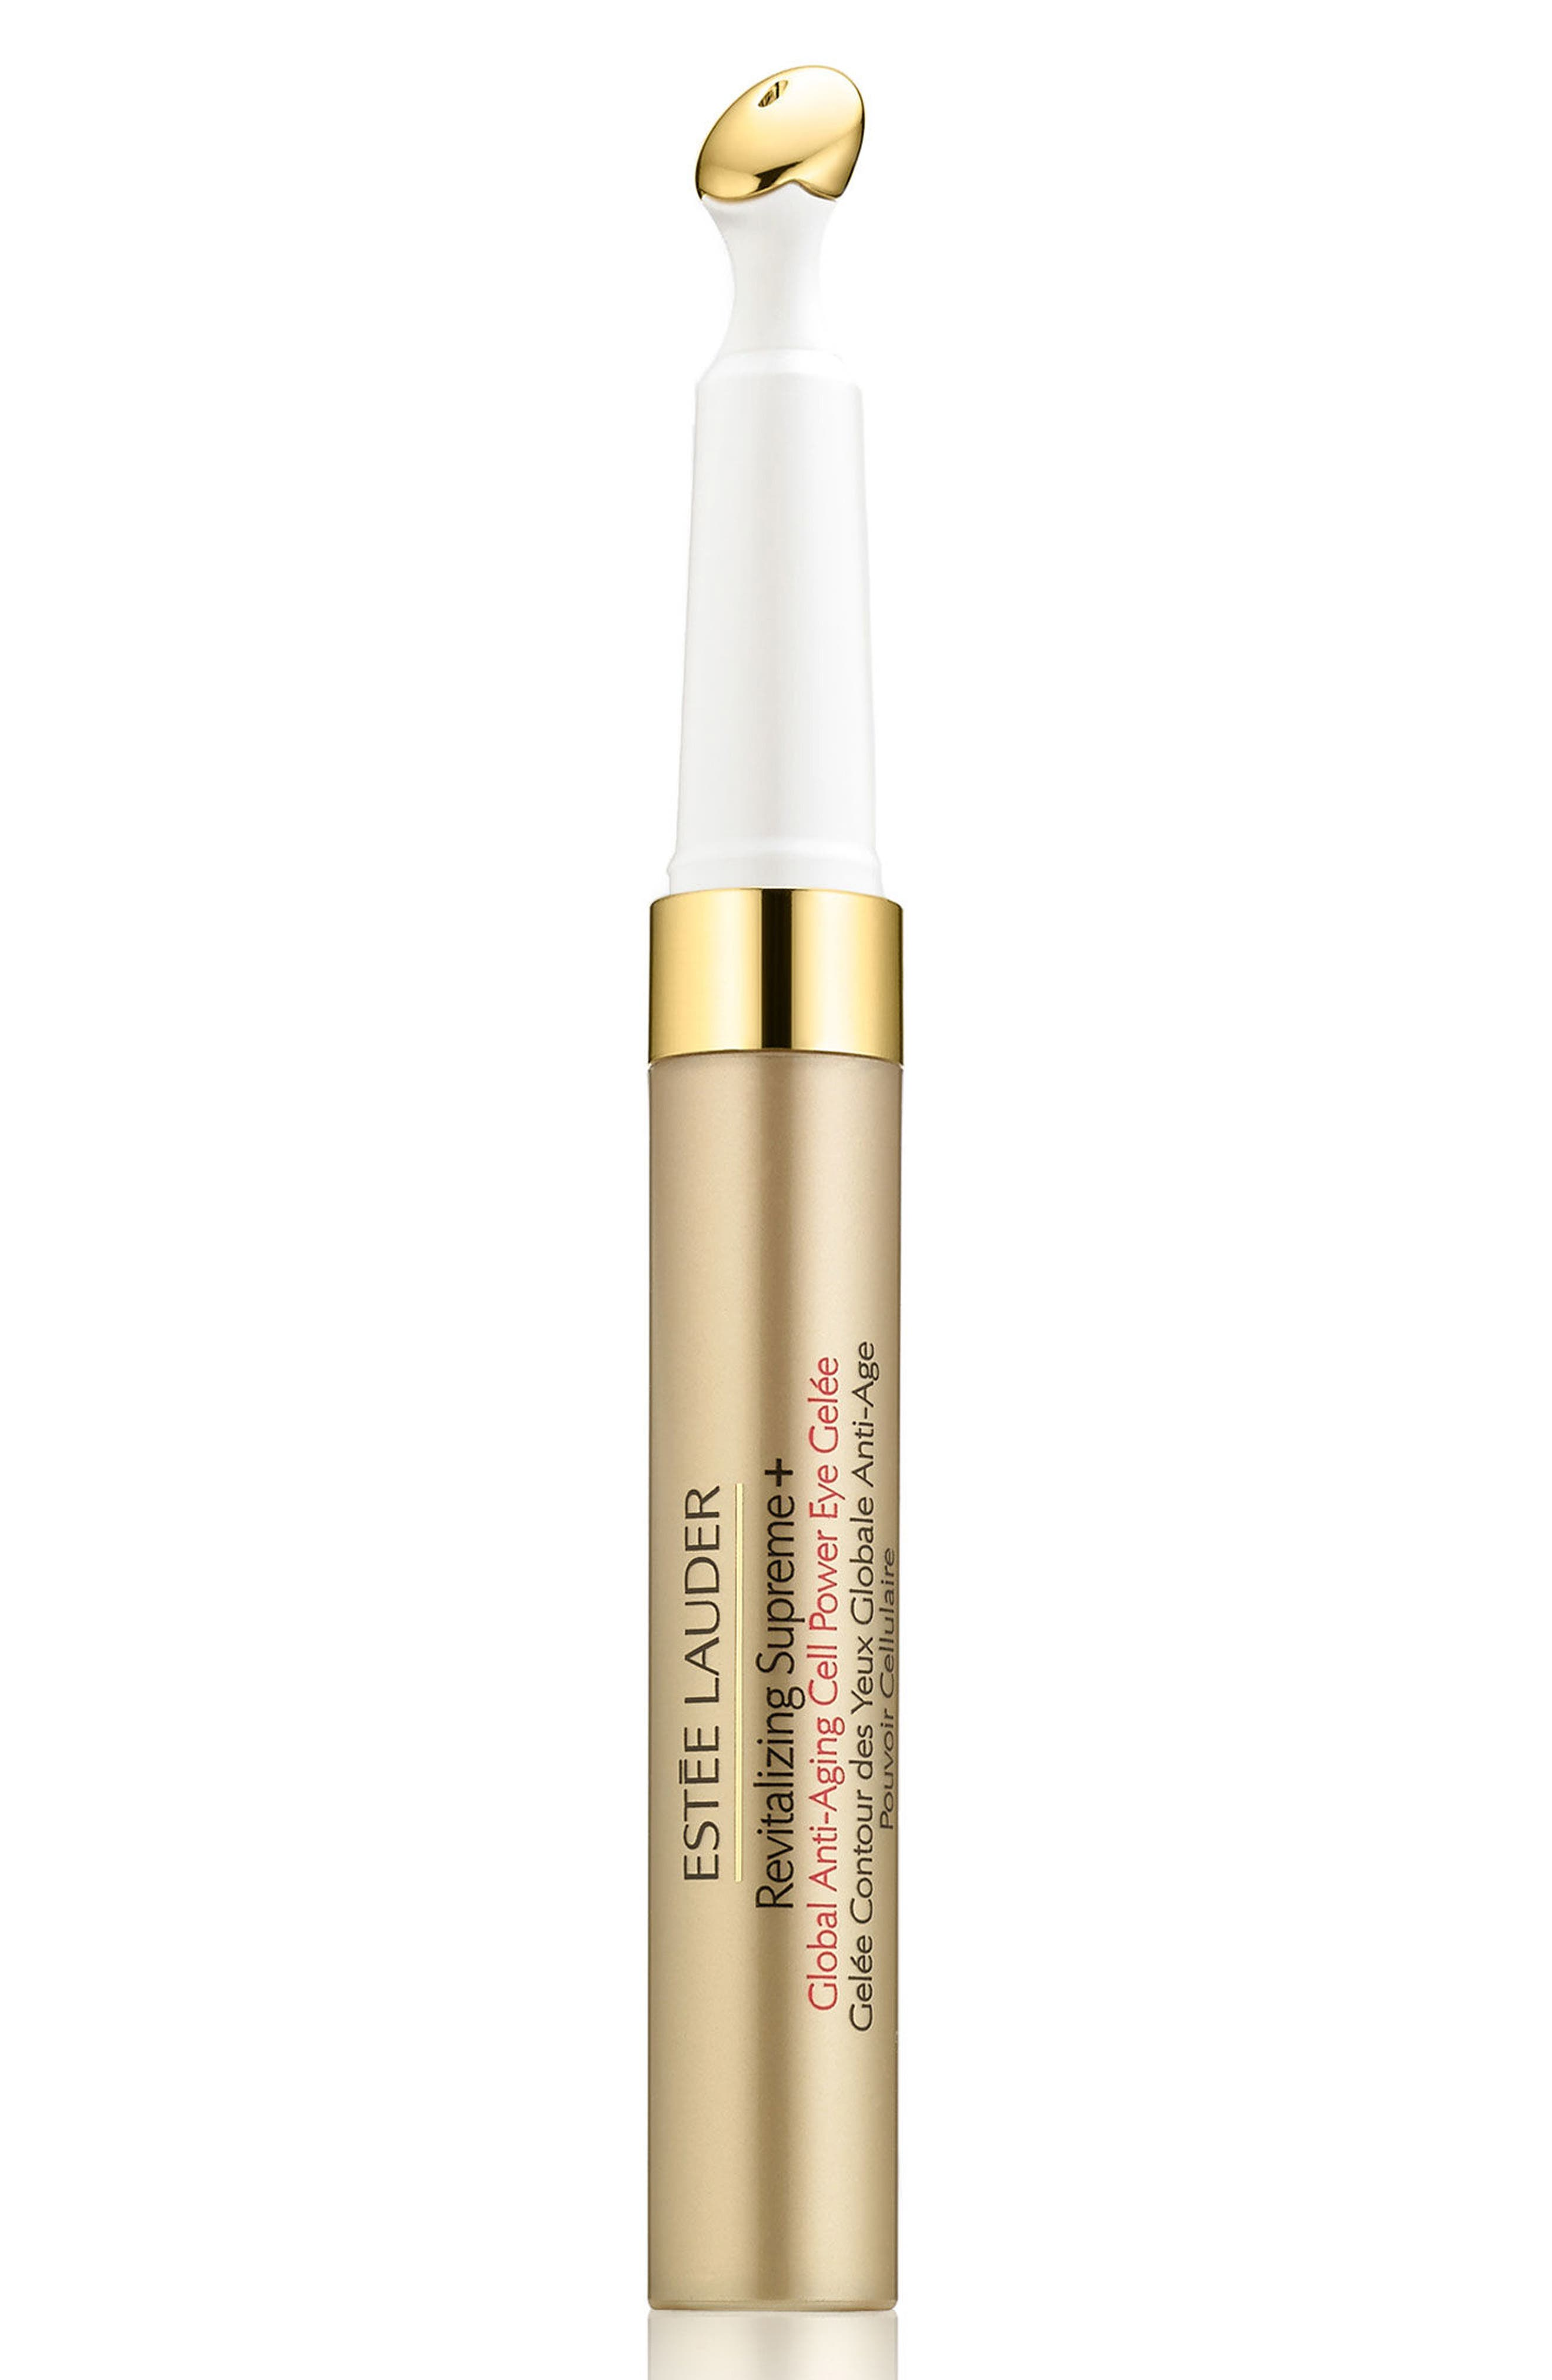 Revitalizing Supreme+ Global Anti-Aging Cell Power Eye Gelée,                         Main,                         color, No Color